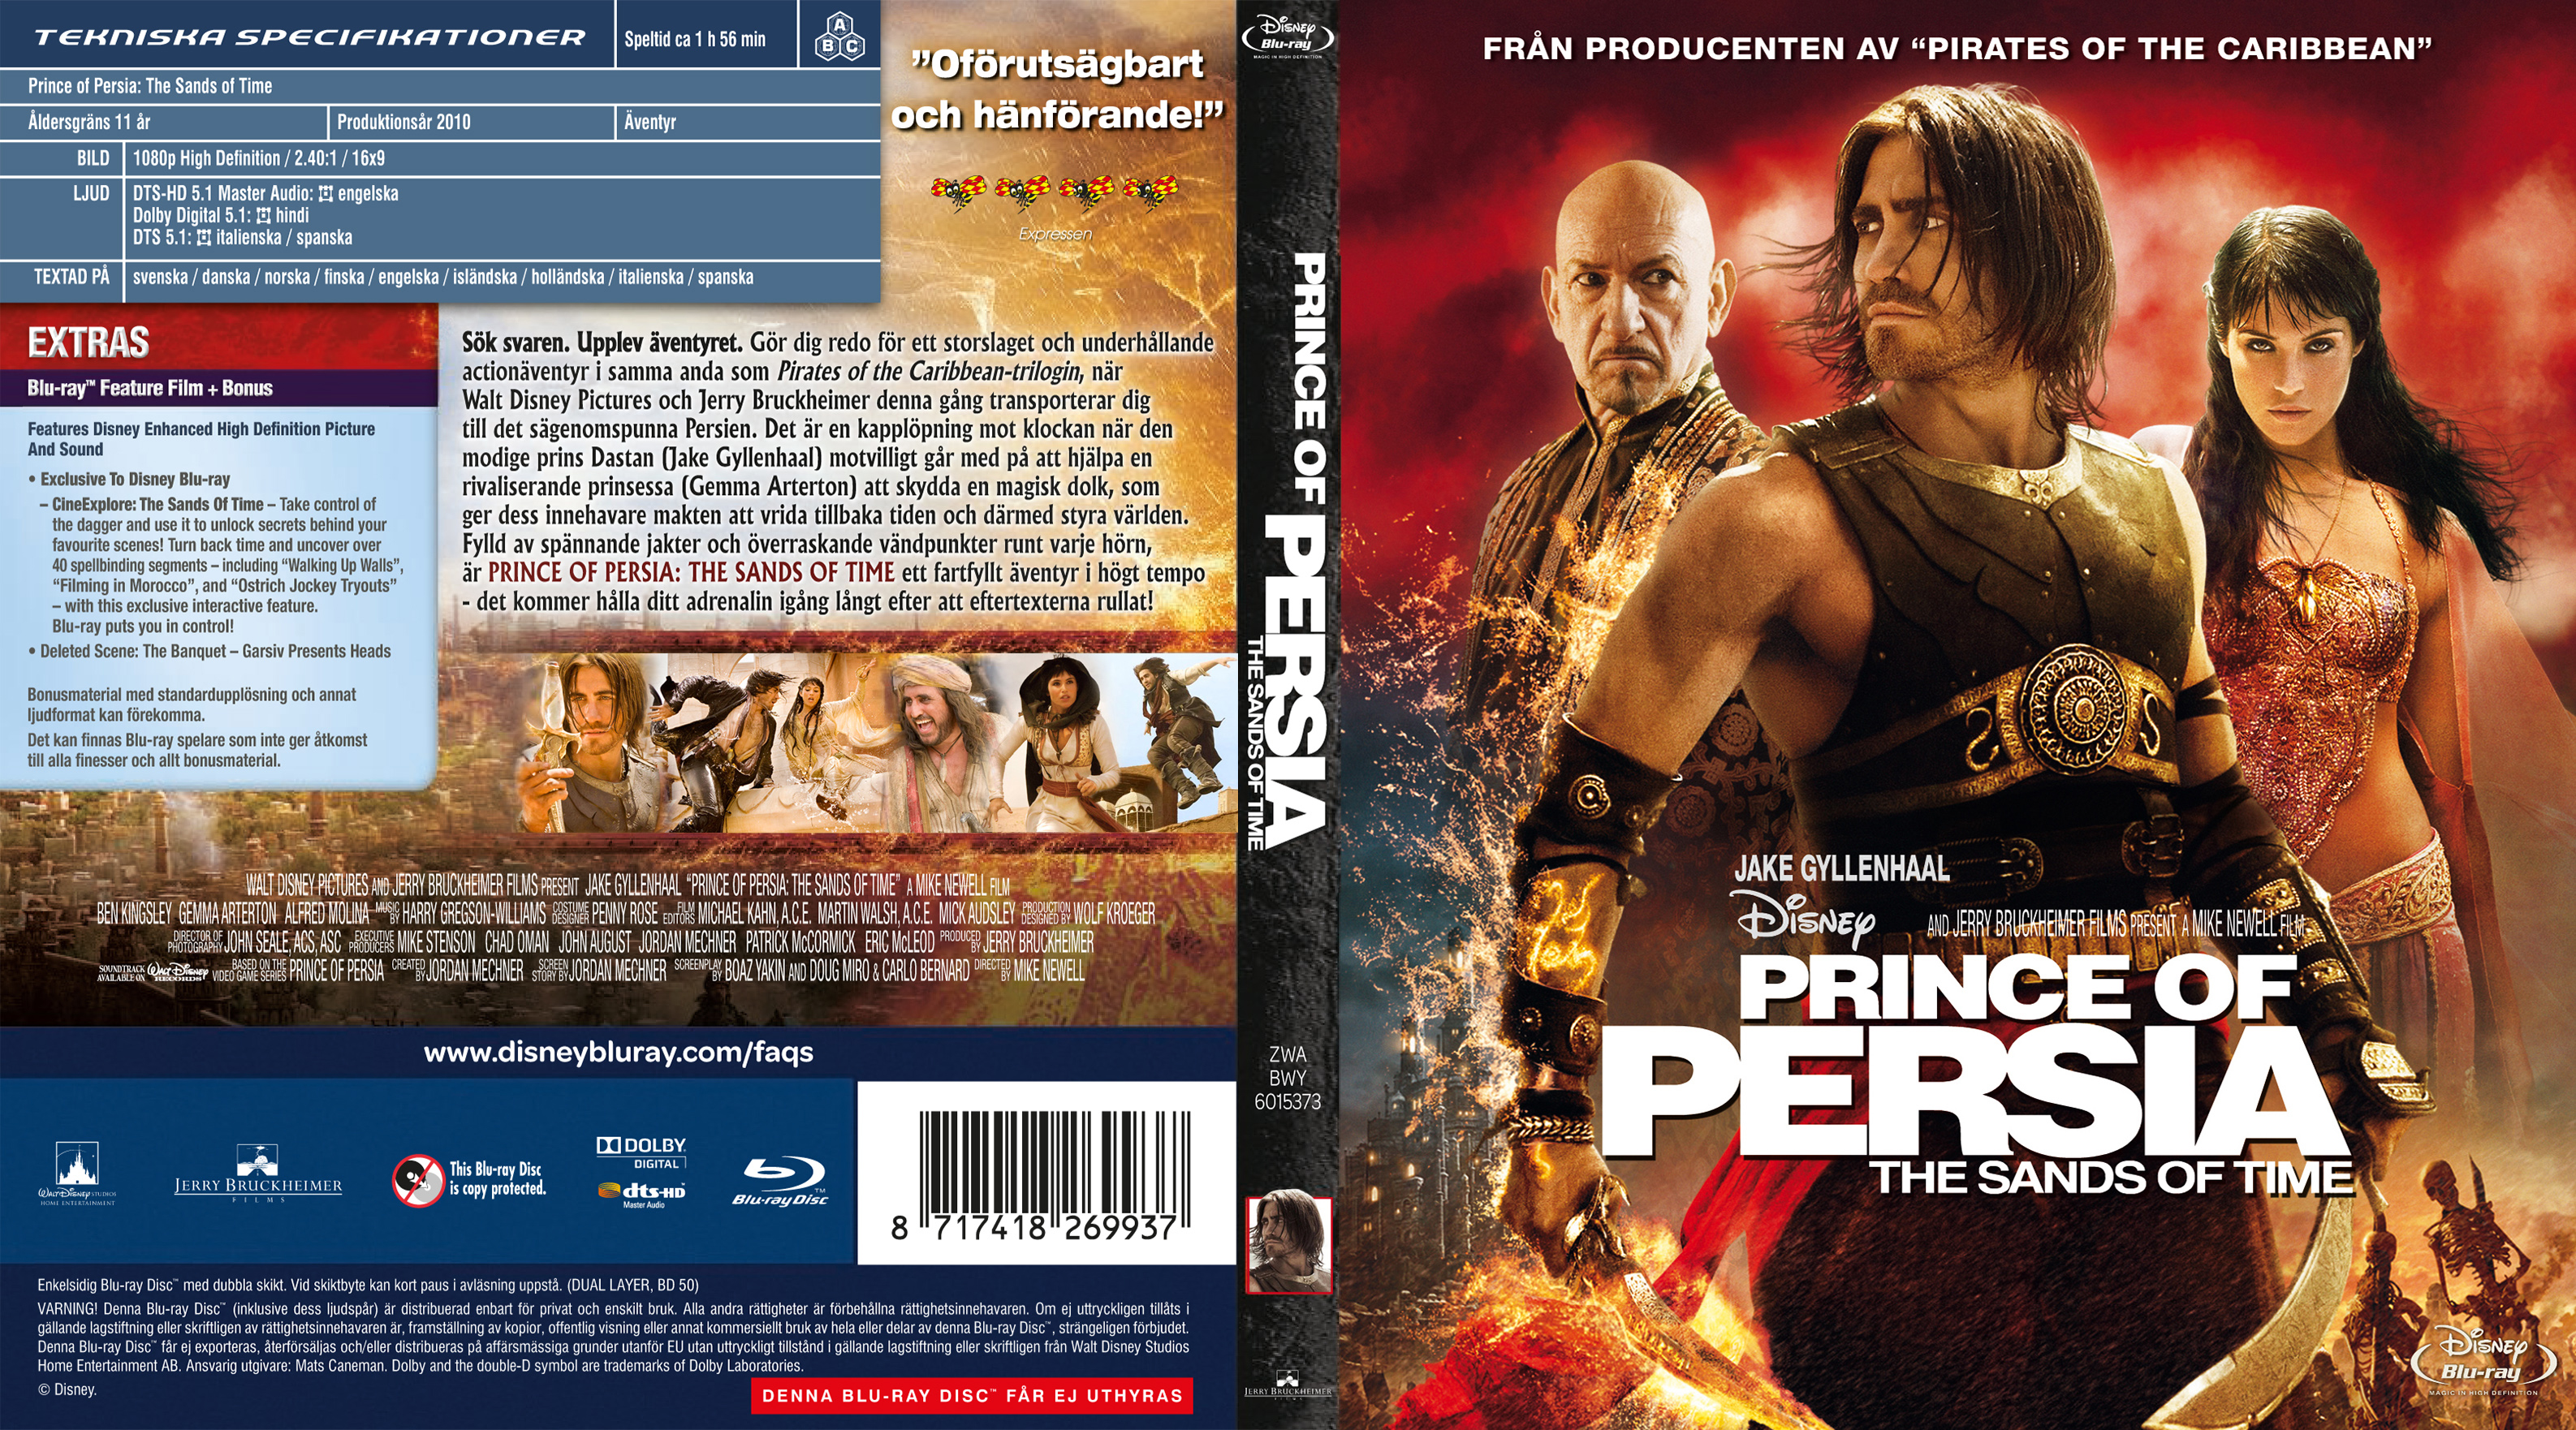 Covers Box Sk Prince Of Persia The Sands Of Time Blu Ray 2010 High Quality Dvd Blueray Movie